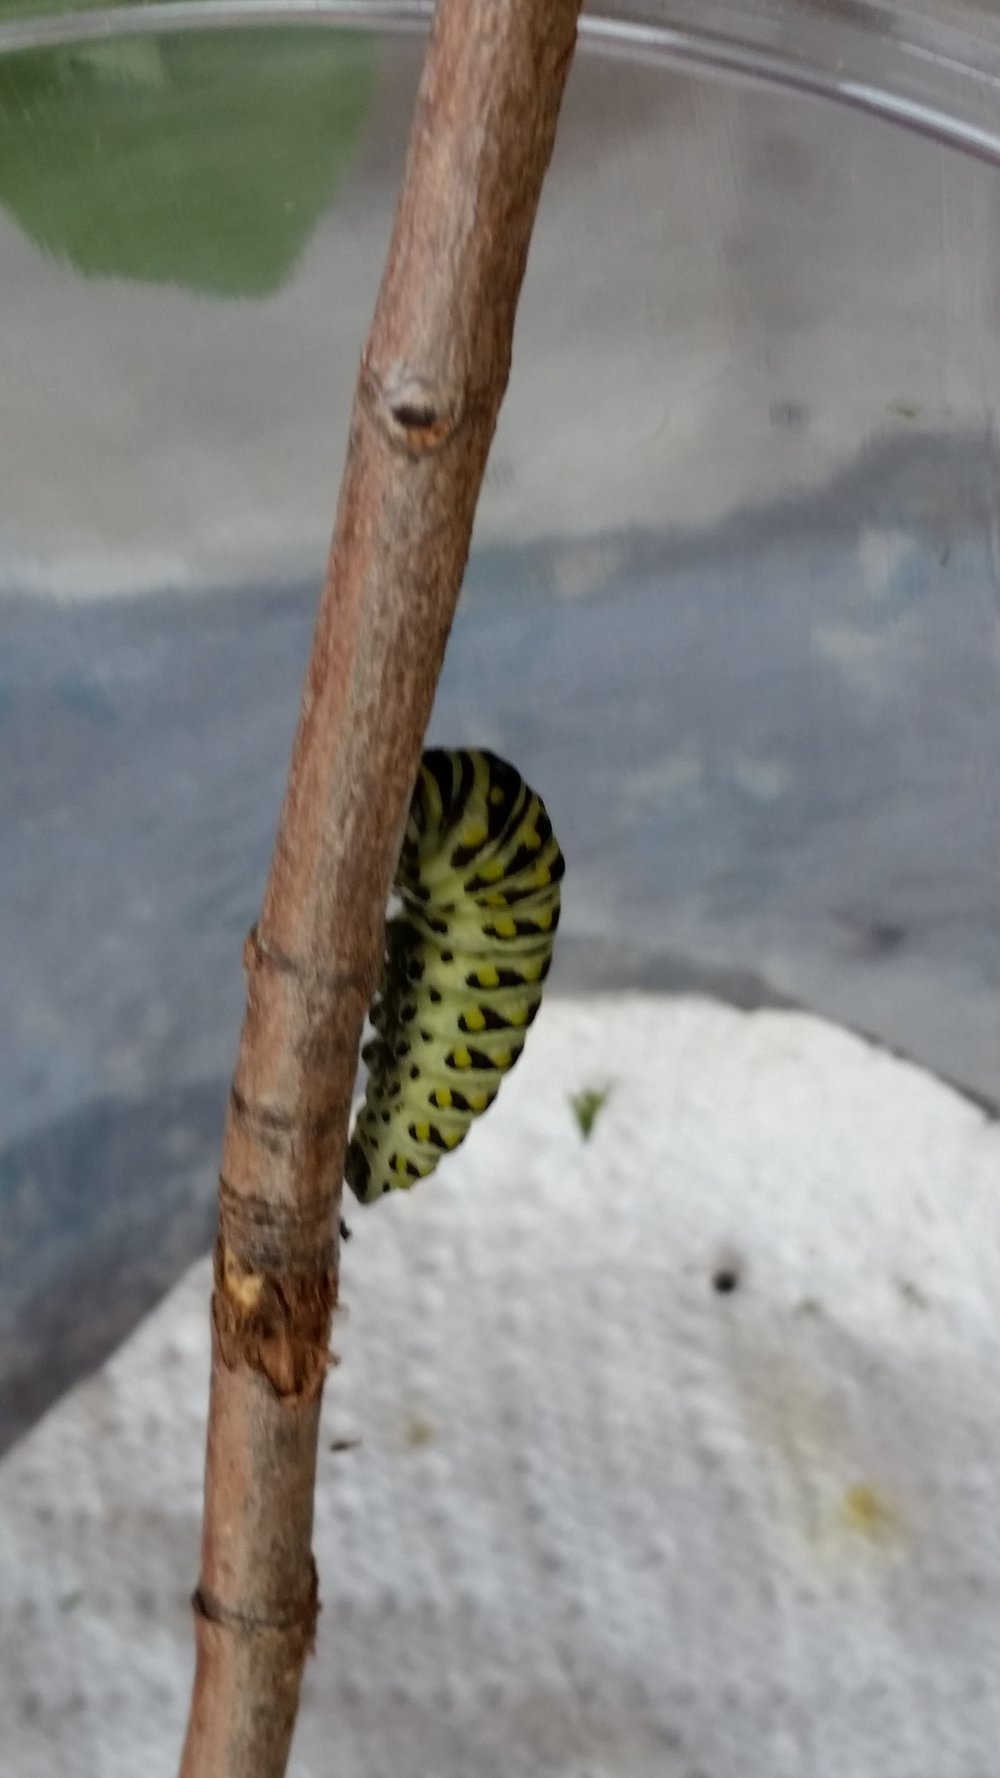 The black swallowtail cat has attached itself to the twig and is ready to go into chrysalis.